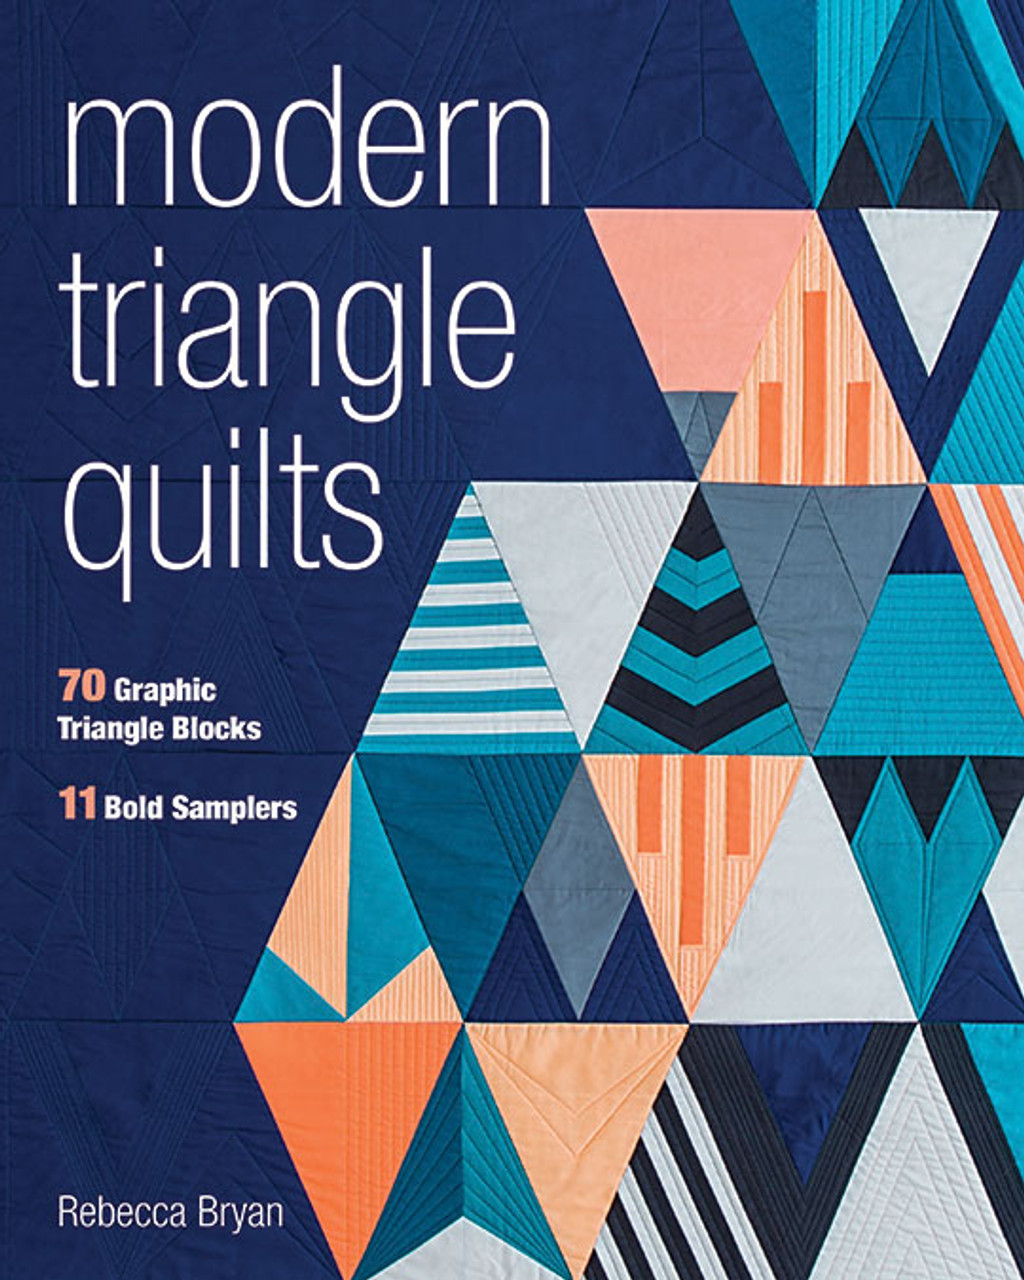 Modern Triangle Quilts 70 Graphic Triangle Blocks 11 Bold